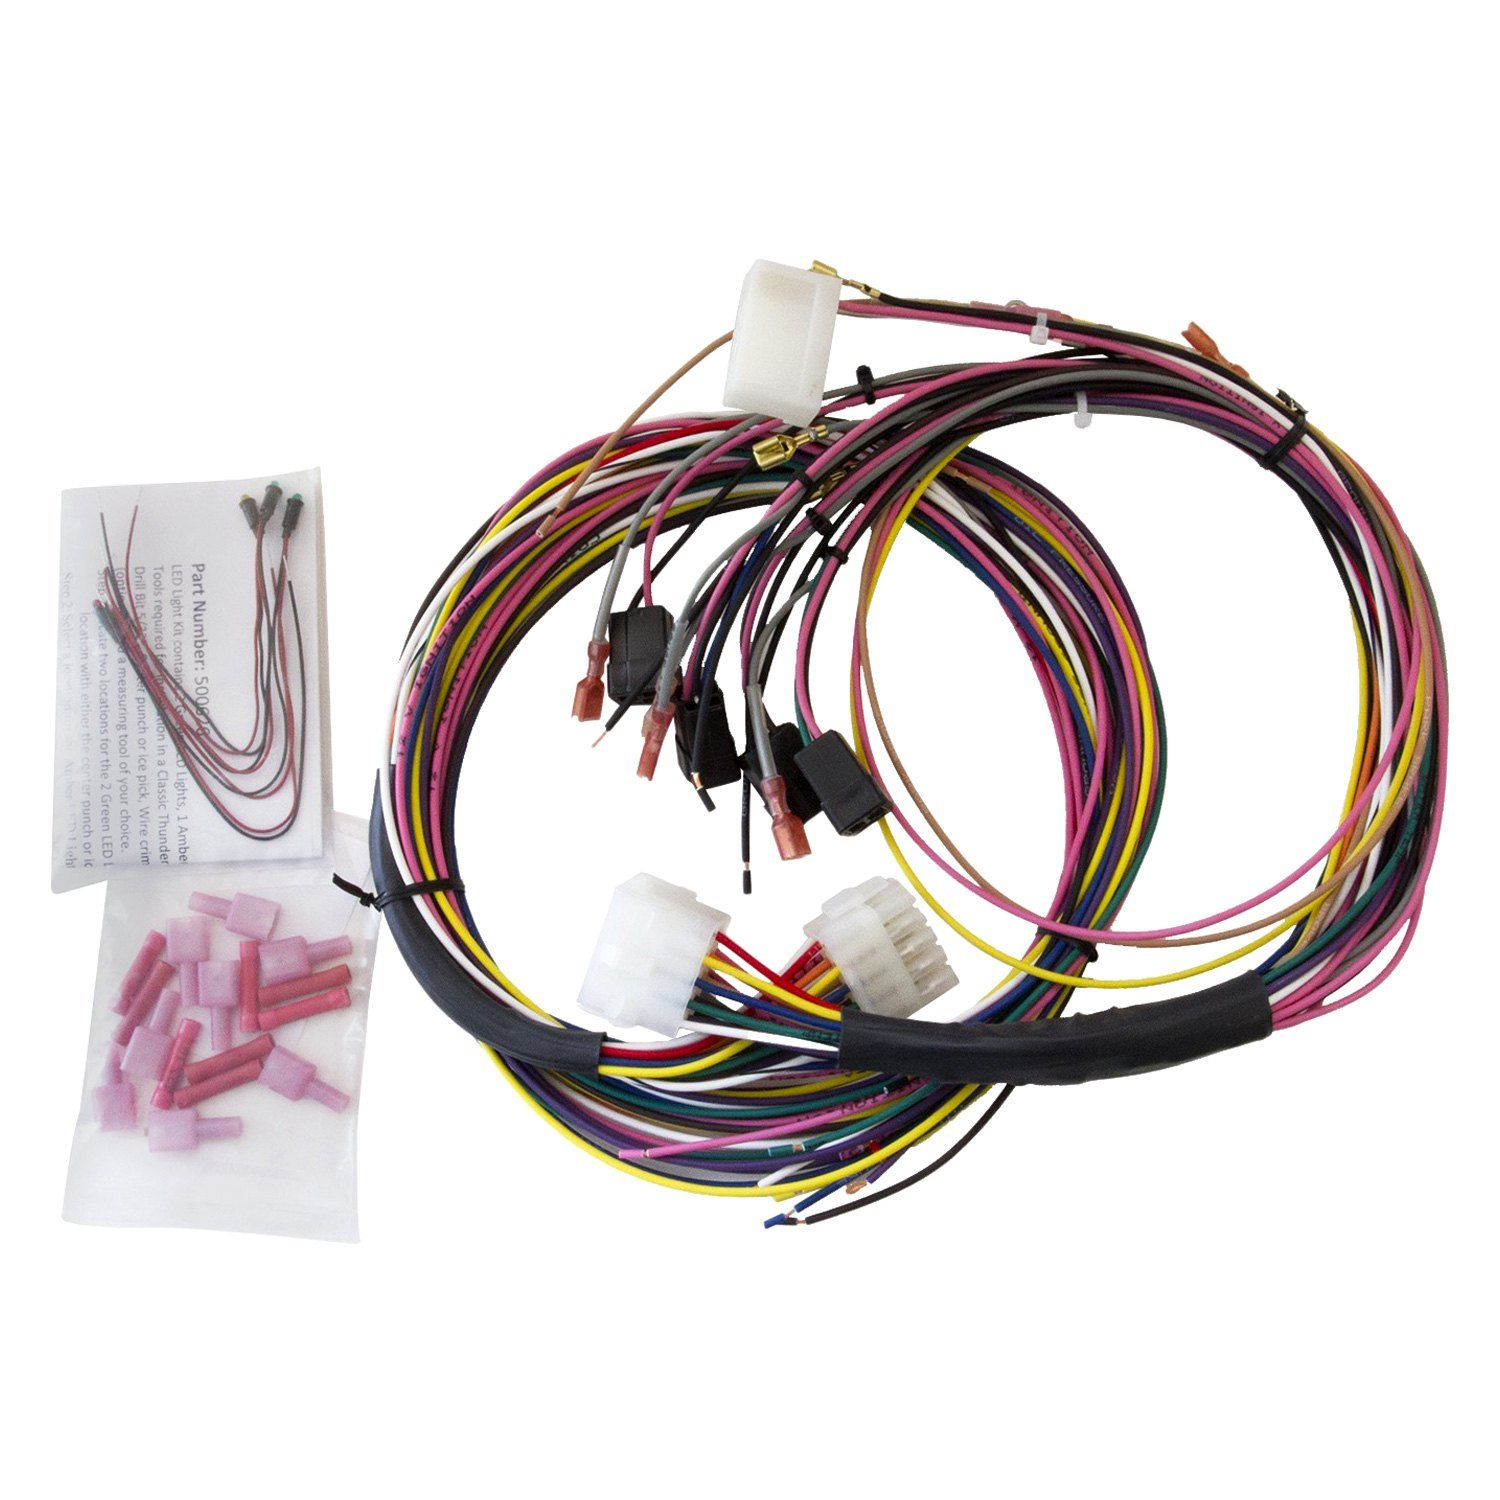 Customized Automotive Wiring Harness Cable Assembly Wire